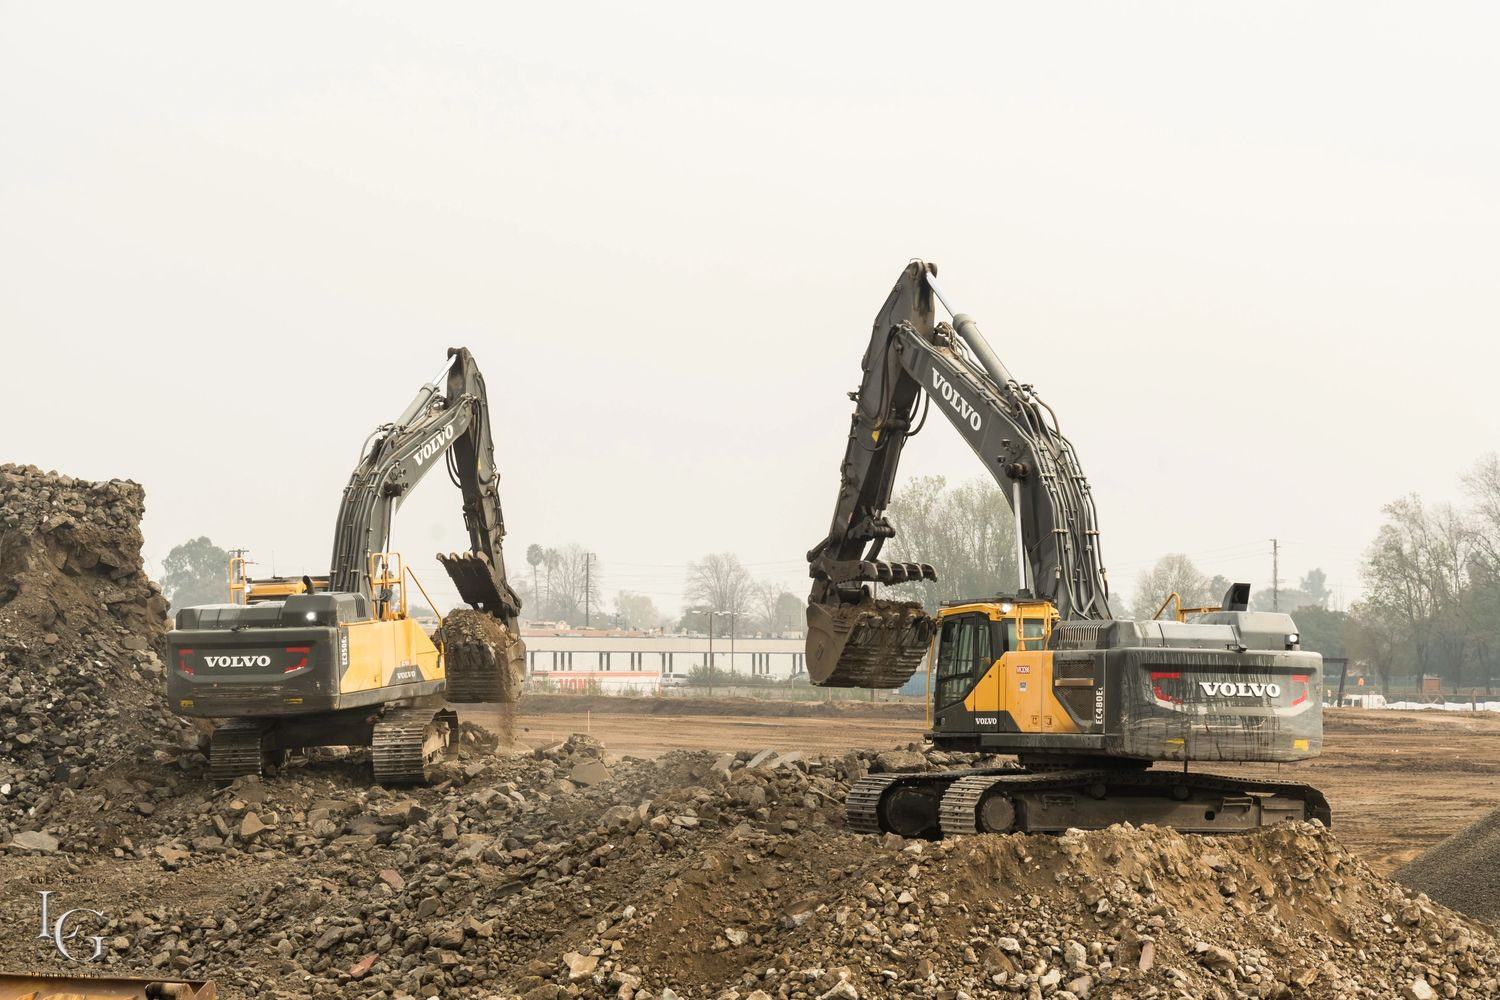 Demolition site clearing, concrete recycling, excavator team work, Volvo Excavator